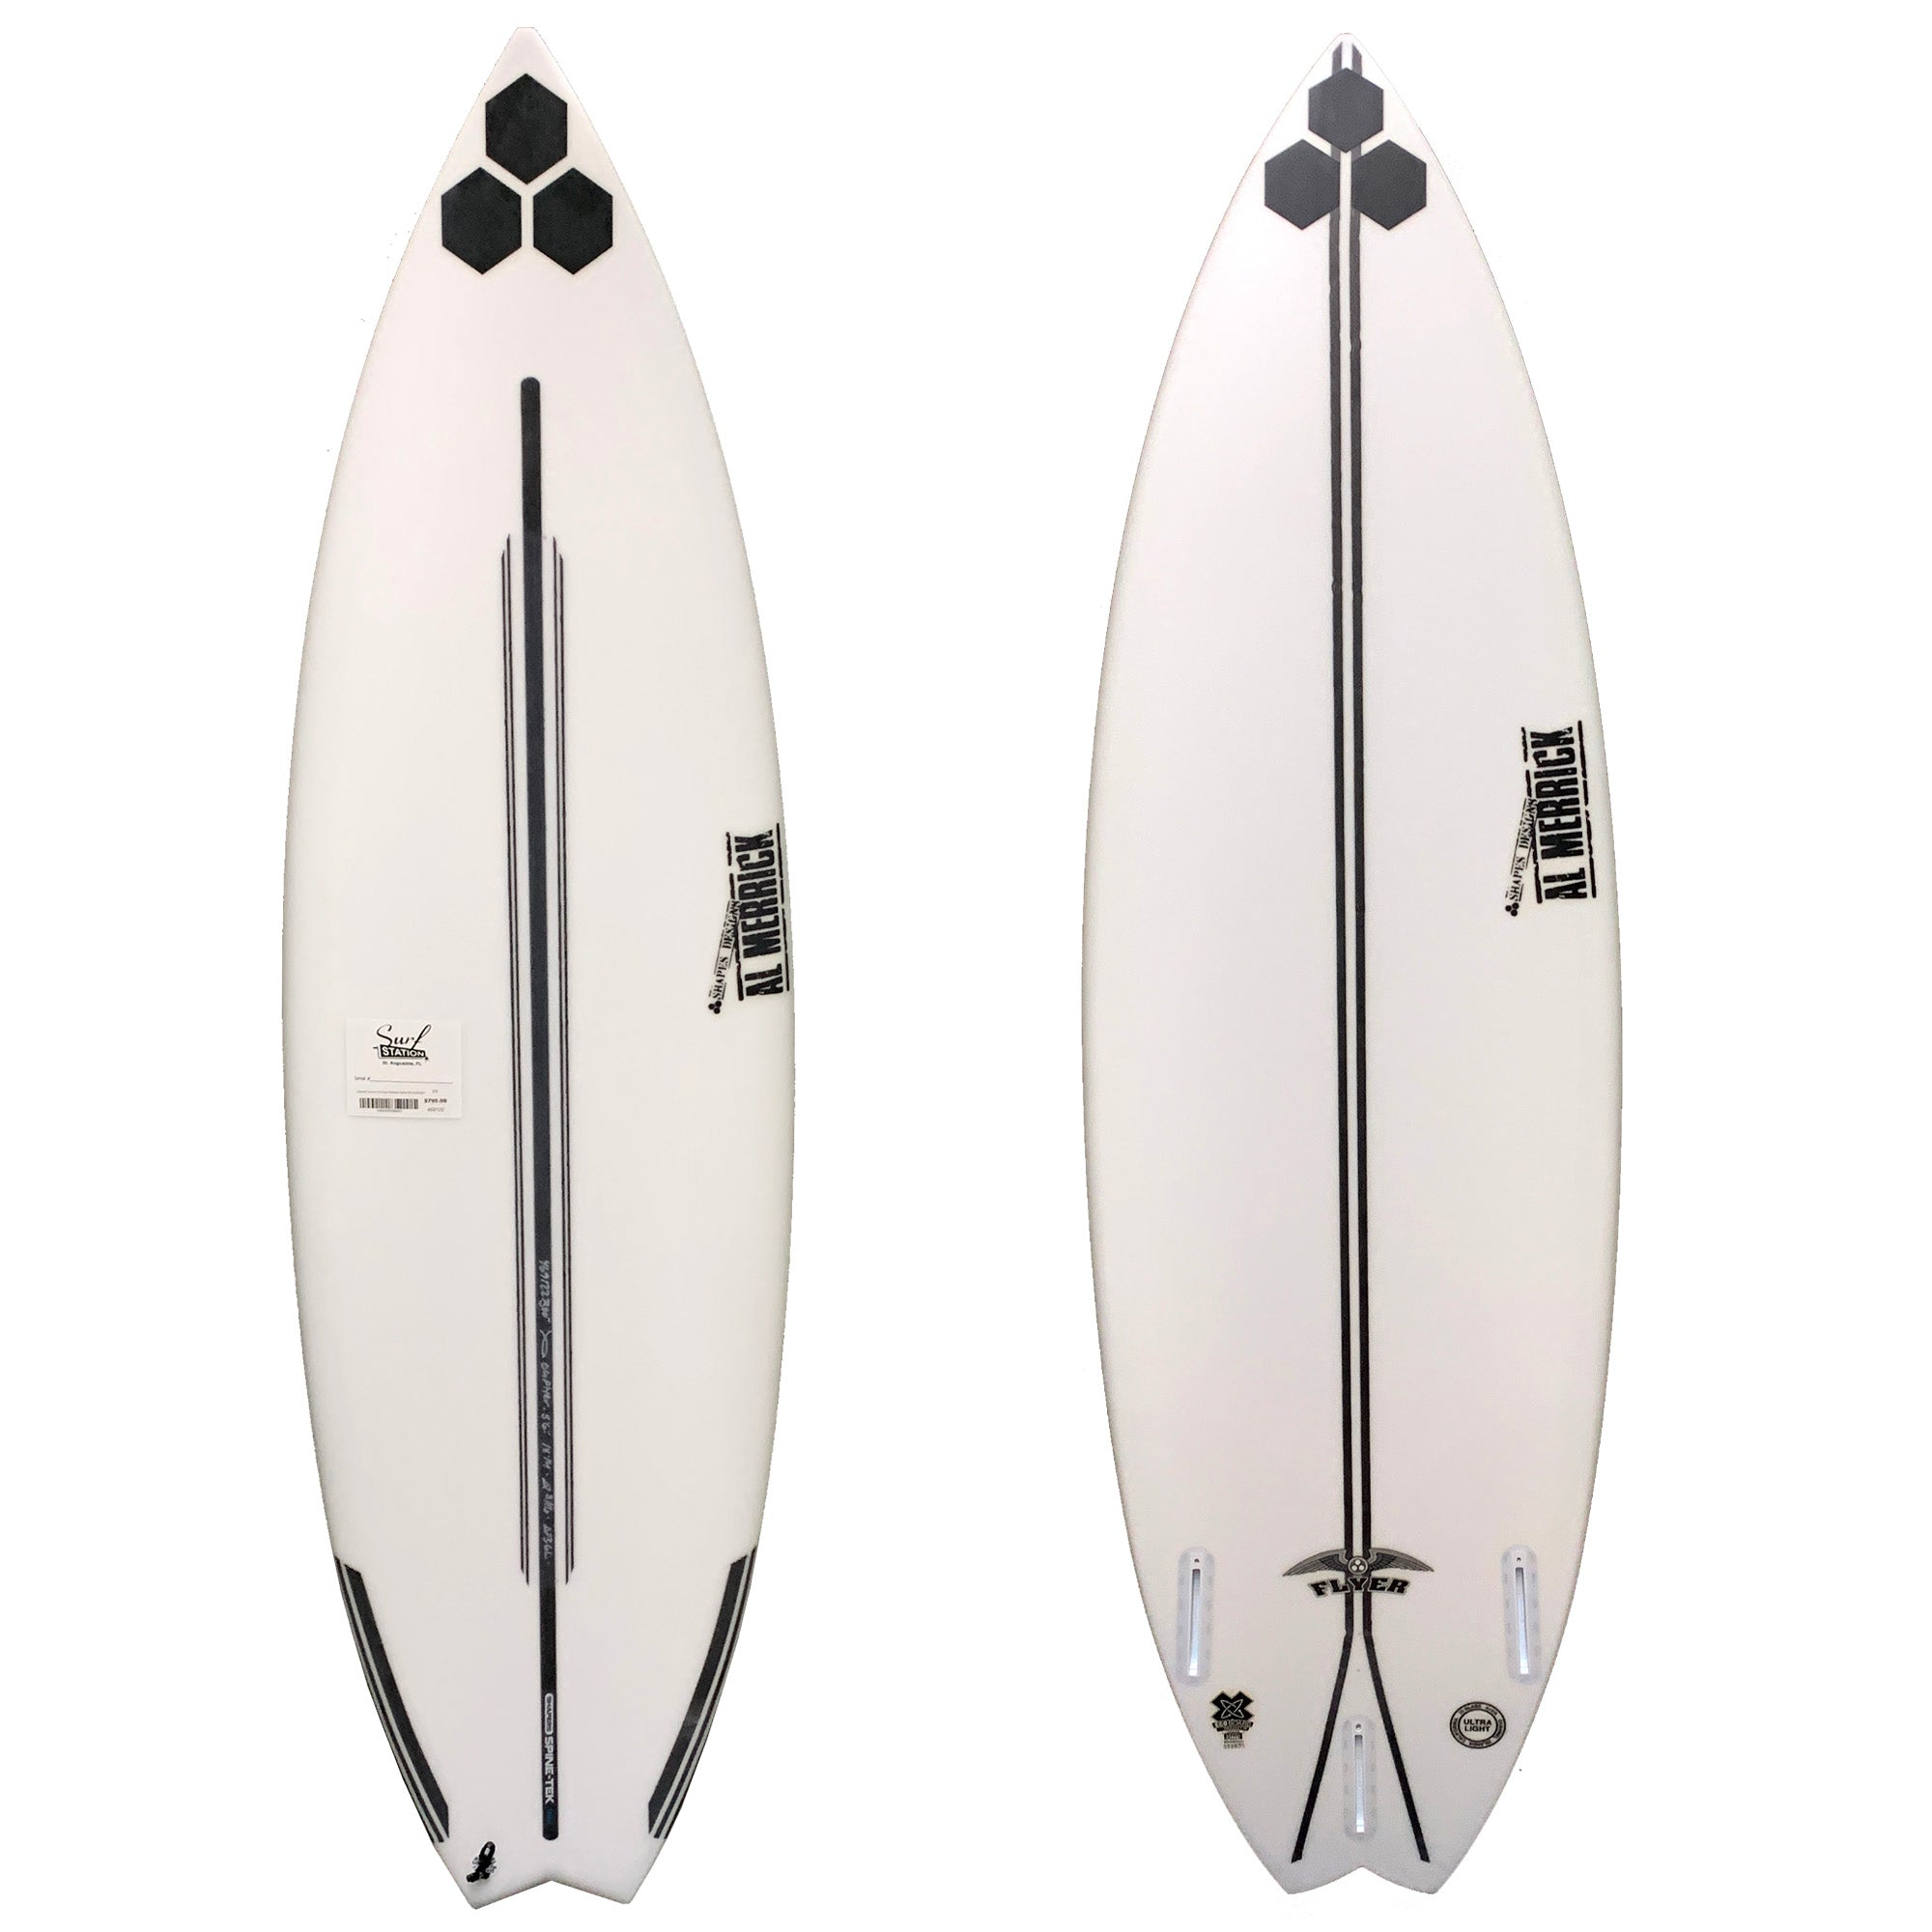 Channel Islands OG Flyer Swallow Spine-Tek Surfboard - Futures